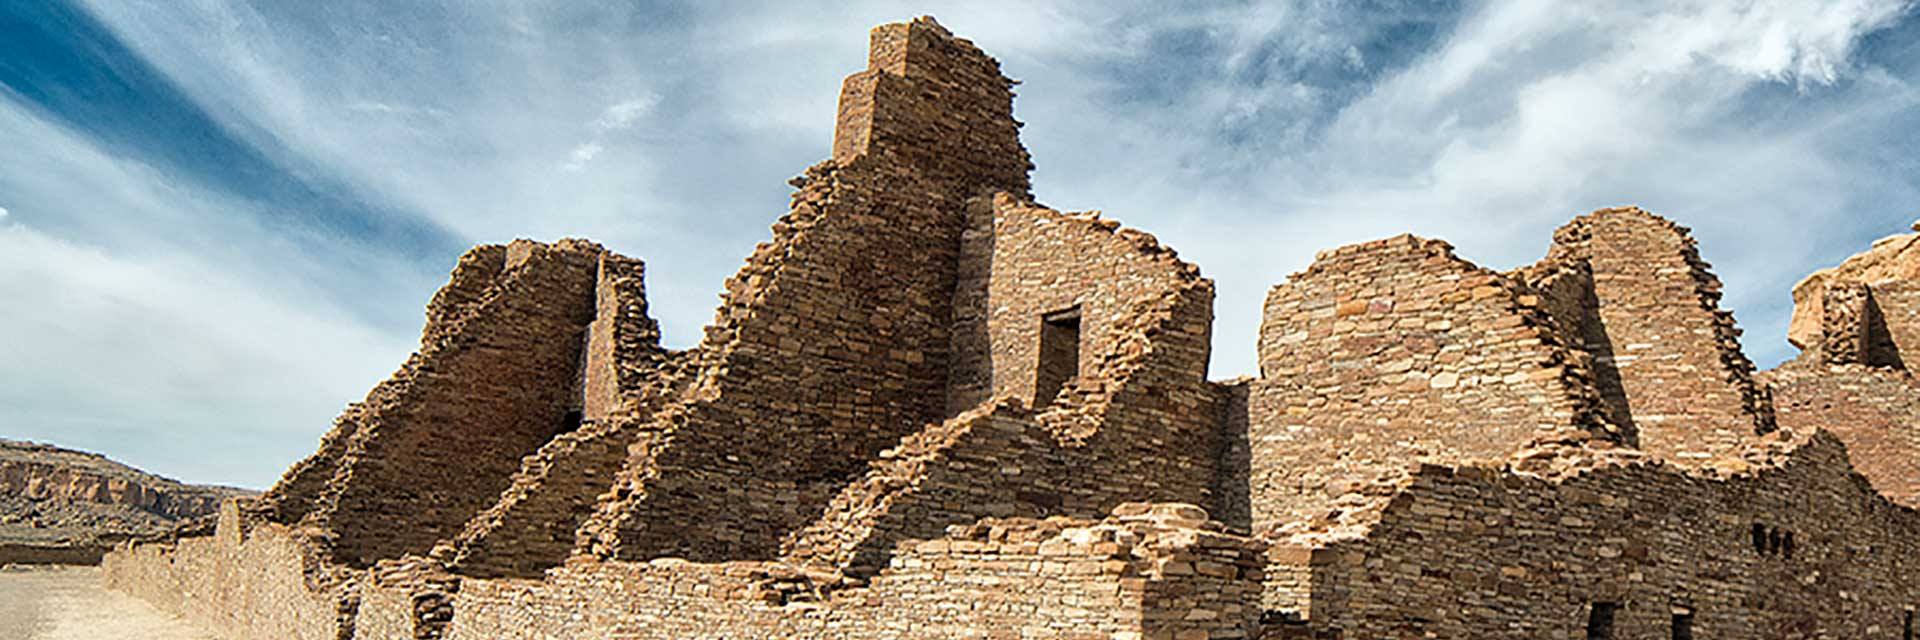 Protecting Chaco Canyon and the San Juan Basin from fracking